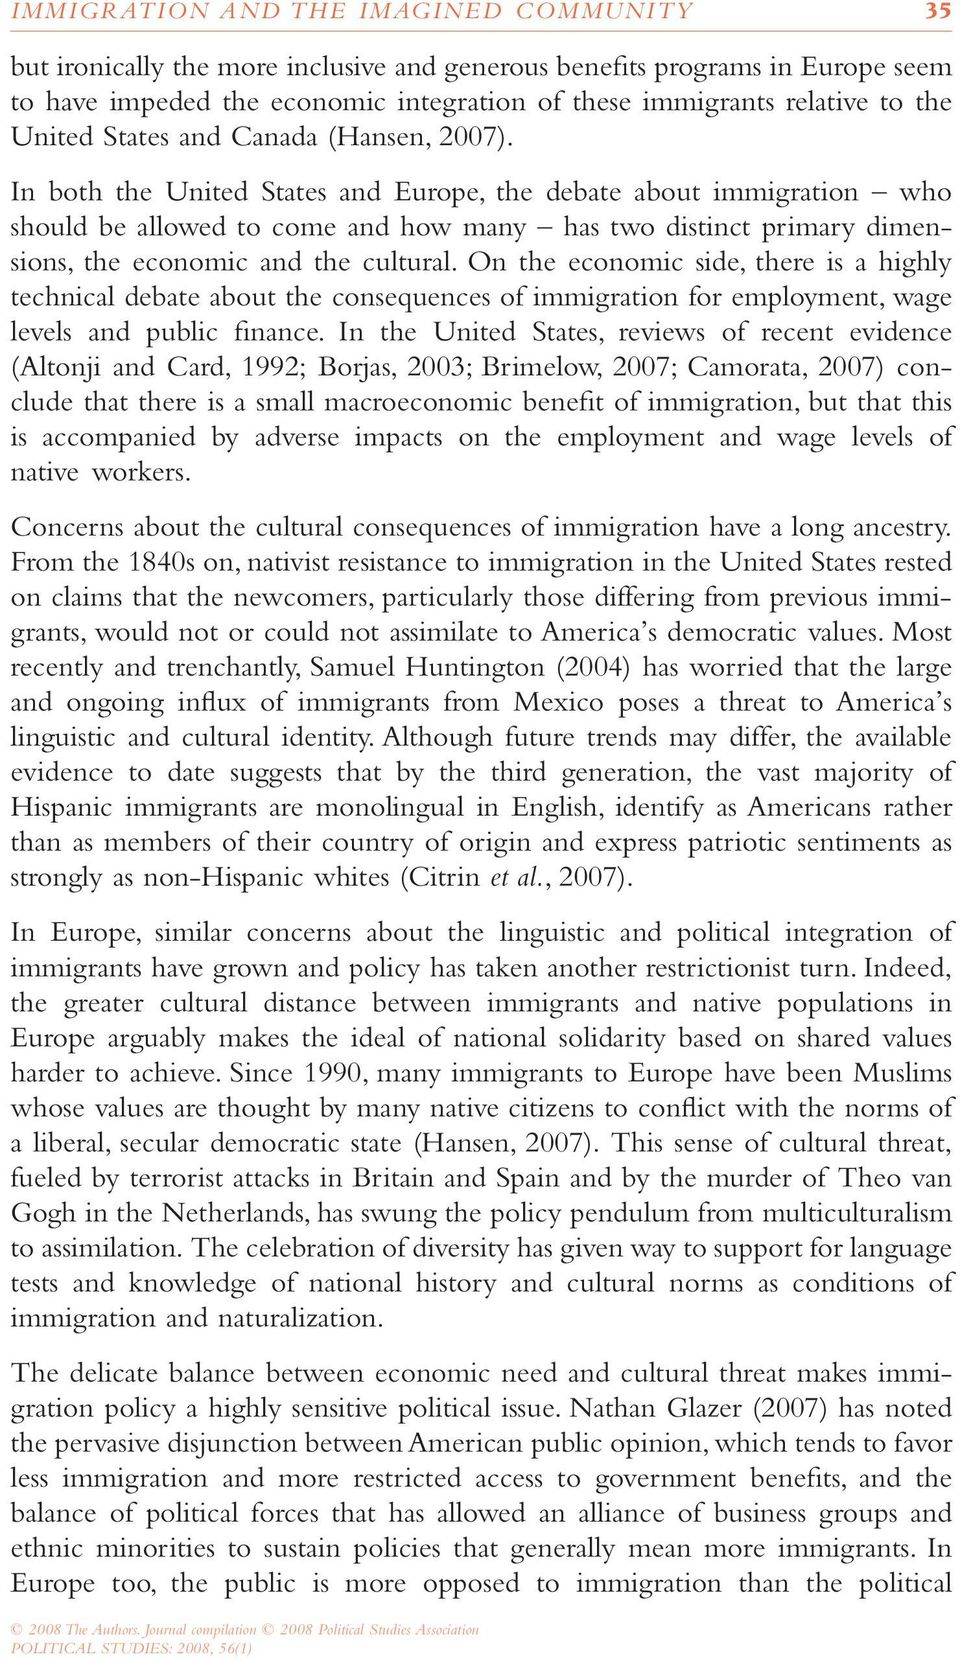 In both the United States and Europe, the debate about immigration who should be allowed to come and how many has two distinct primary dimensions, the economic and the cultural.